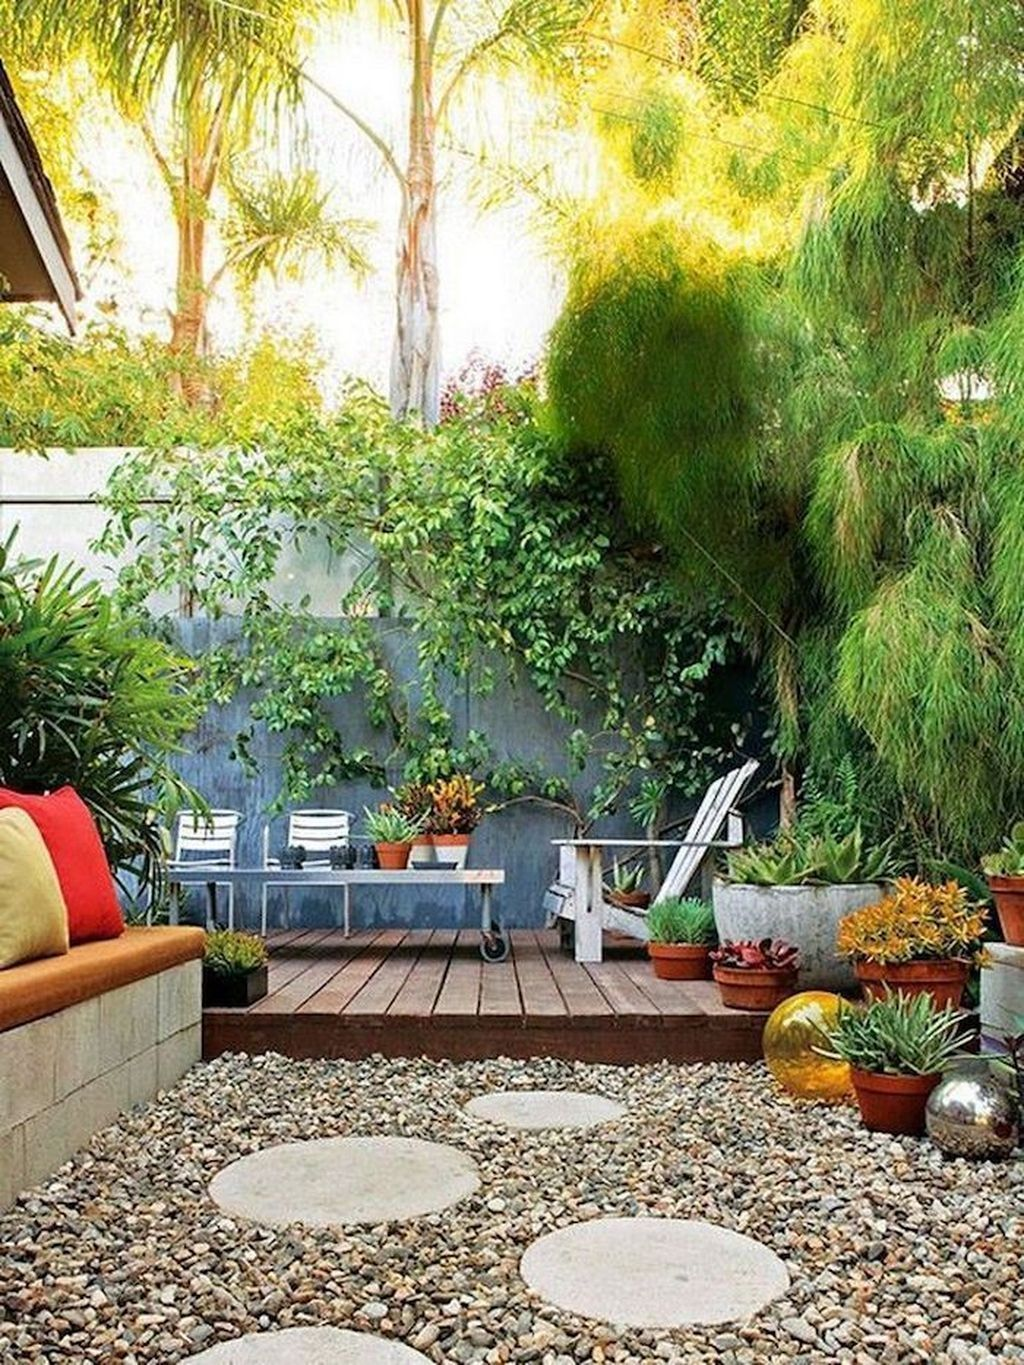 47 attractive diy small backyard ideas on a budget small on best large backyard ideas with attractive fire pit on a budget id=34669